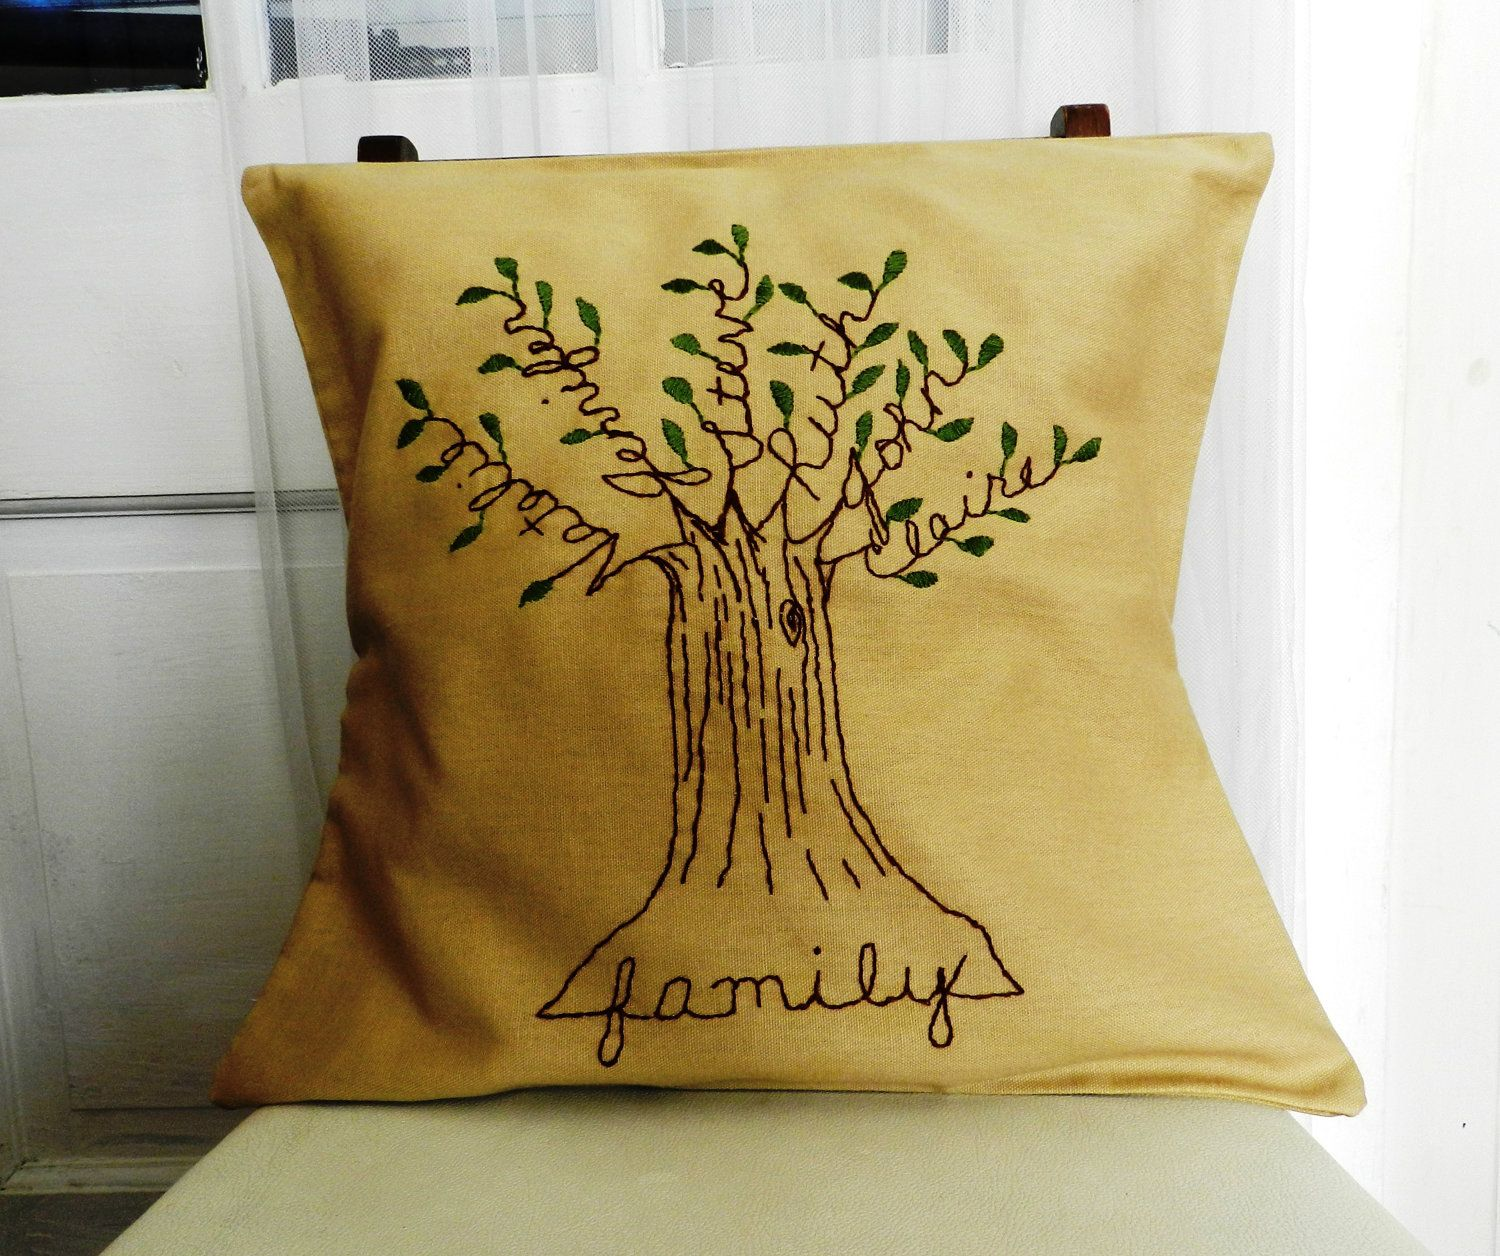 Diy personalized family tree design embroidery pattern pdf one of diy personalized family tree design embroidery pattern pdf one of a kind artwork embroidery diy bankloansurffo Choice Image